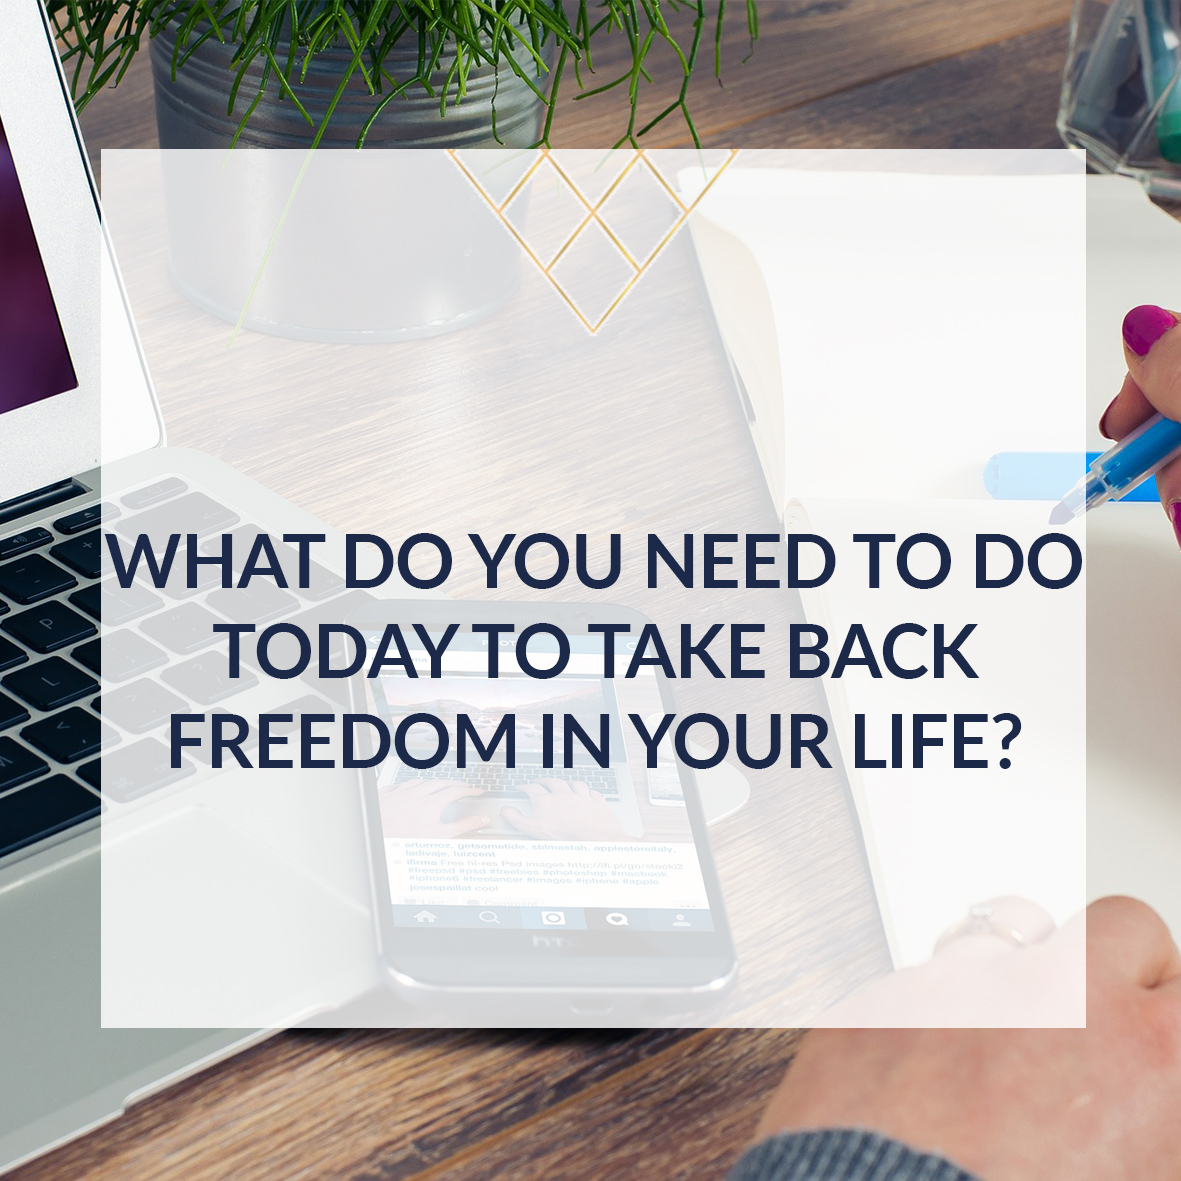 What do you need to do today to take back freedom in your life square